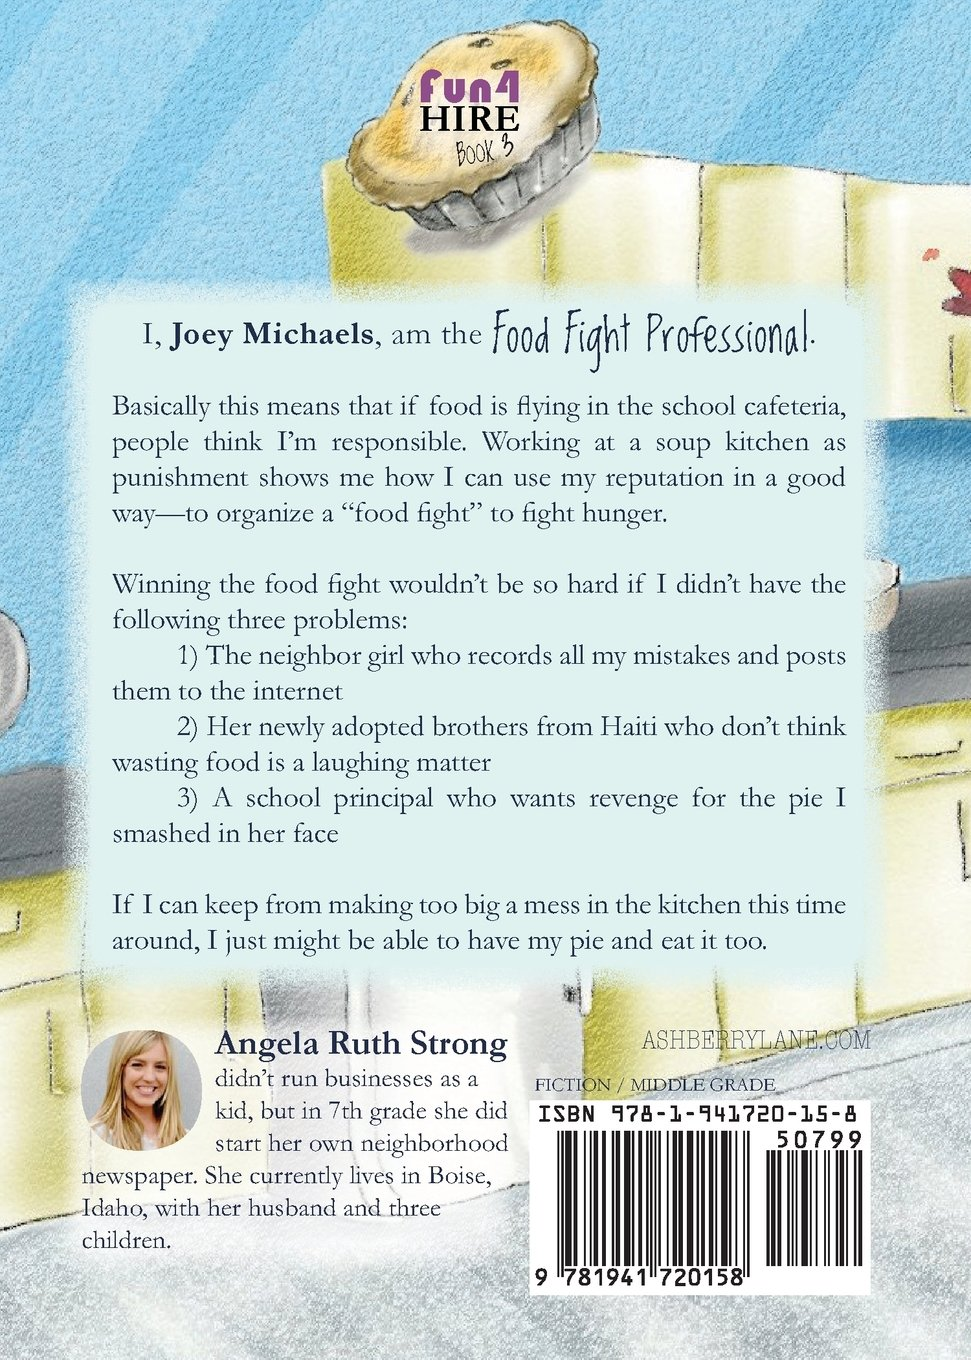 Amazon.com: The Food Fight Professional (9781941720158): Angela Ruth ...